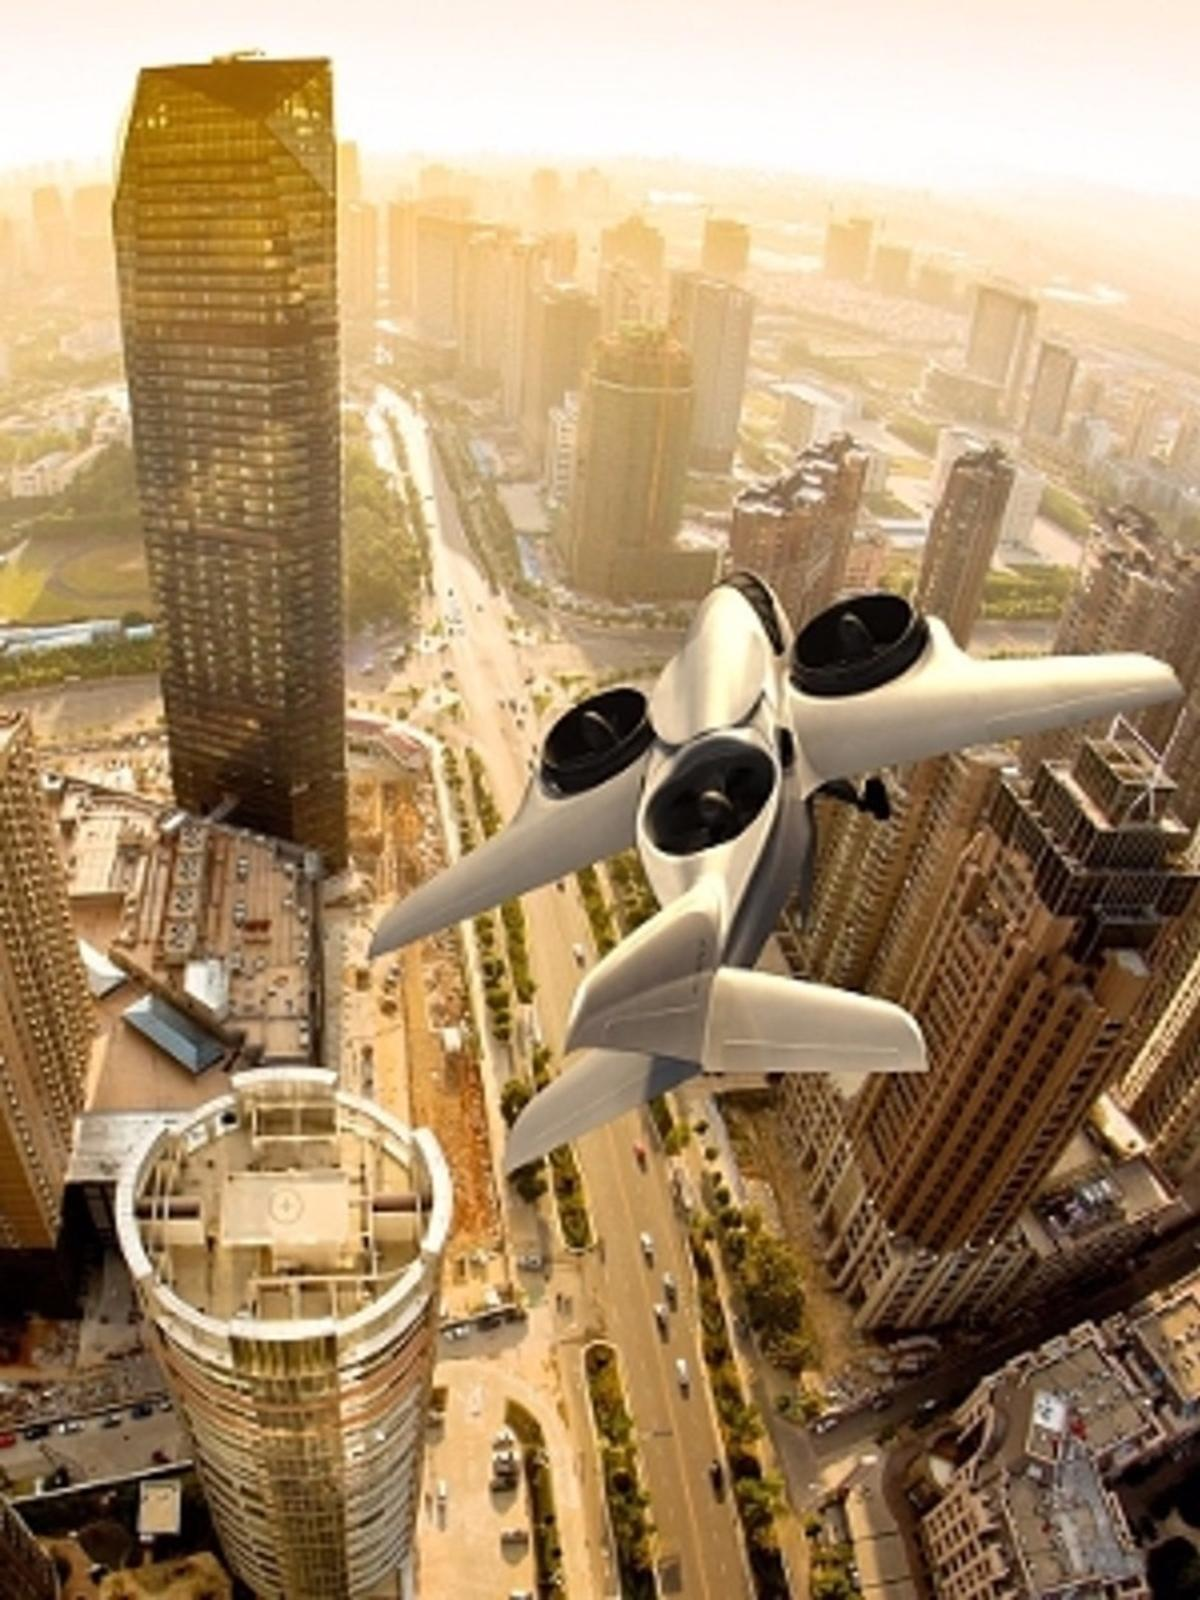 Artist's concept of the TriFan 600, which is the subject of an equity crowdfunding campaign